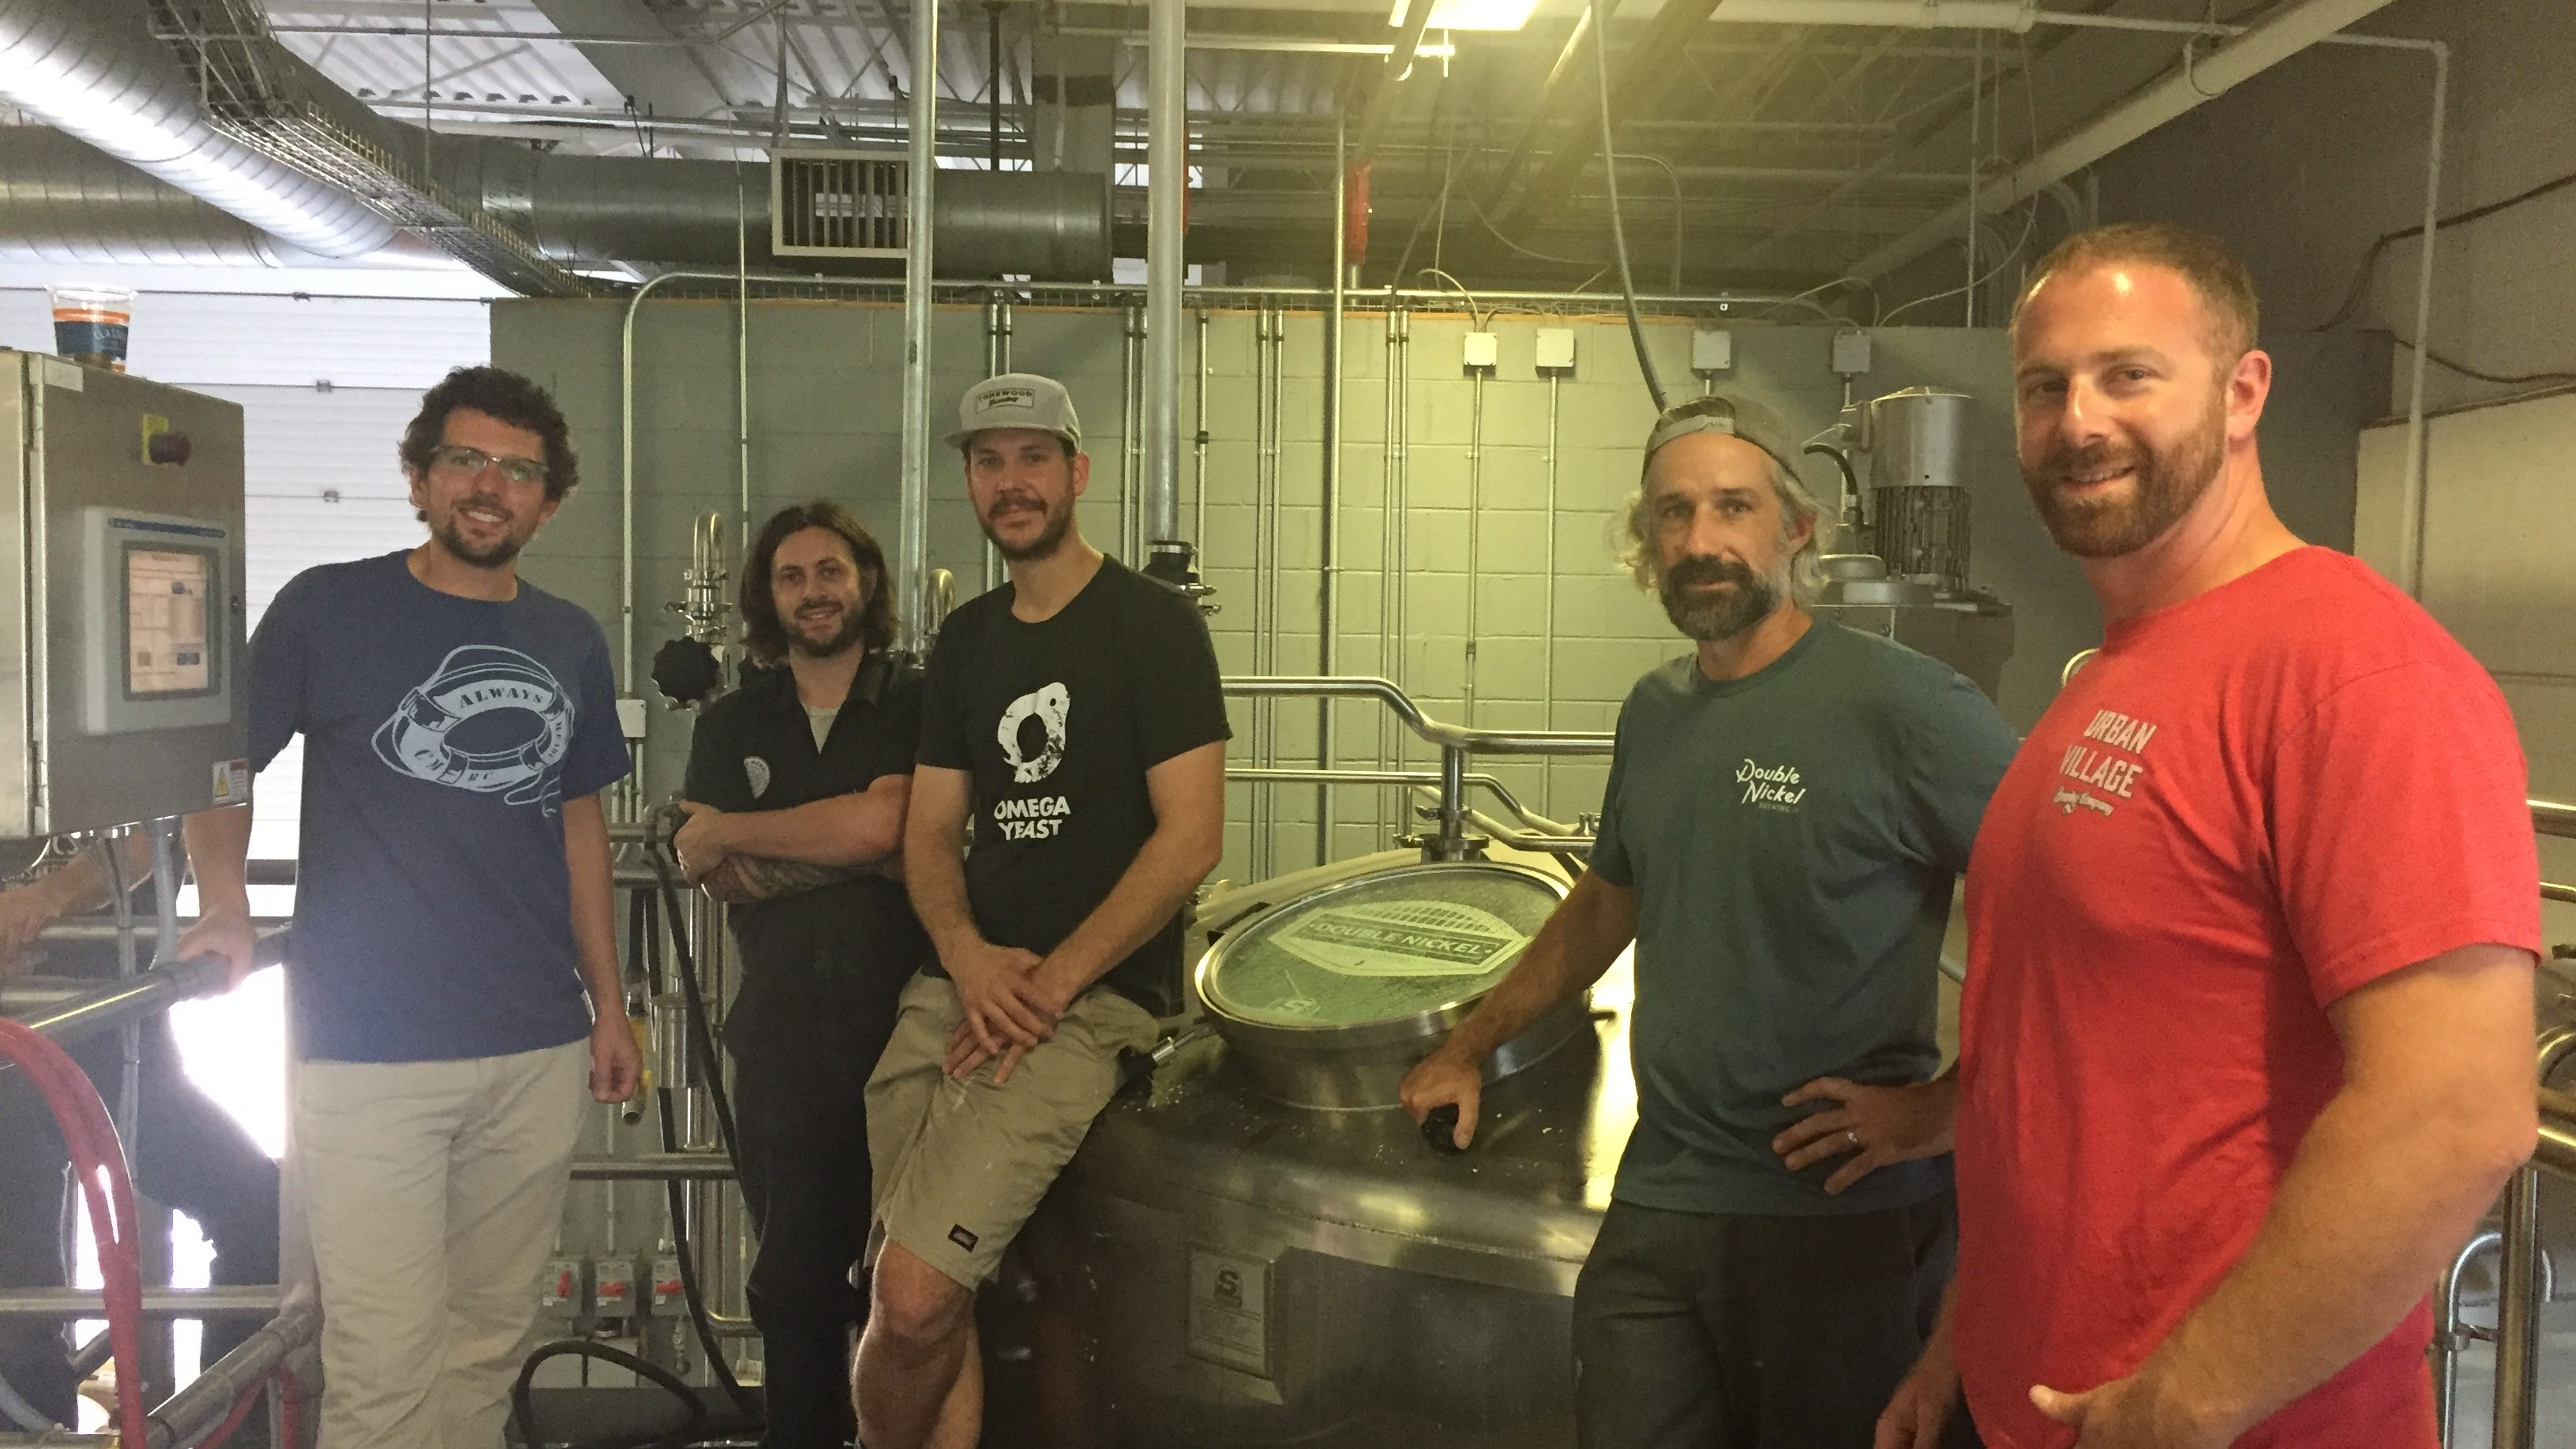 Friendsgiving Hazy IPA brewers gather at Double Nickel Brewing Company in Pennsauken, surrounded by brewery equipment. From left: Chris  Henke of Cape May Brewing; J.T. Melvin of Double Nickel; Eli Facchinei of Tonewood Brewing; Drew Perry of Double Nickel, and Dave Goldman of Urban Viillage Brewing.